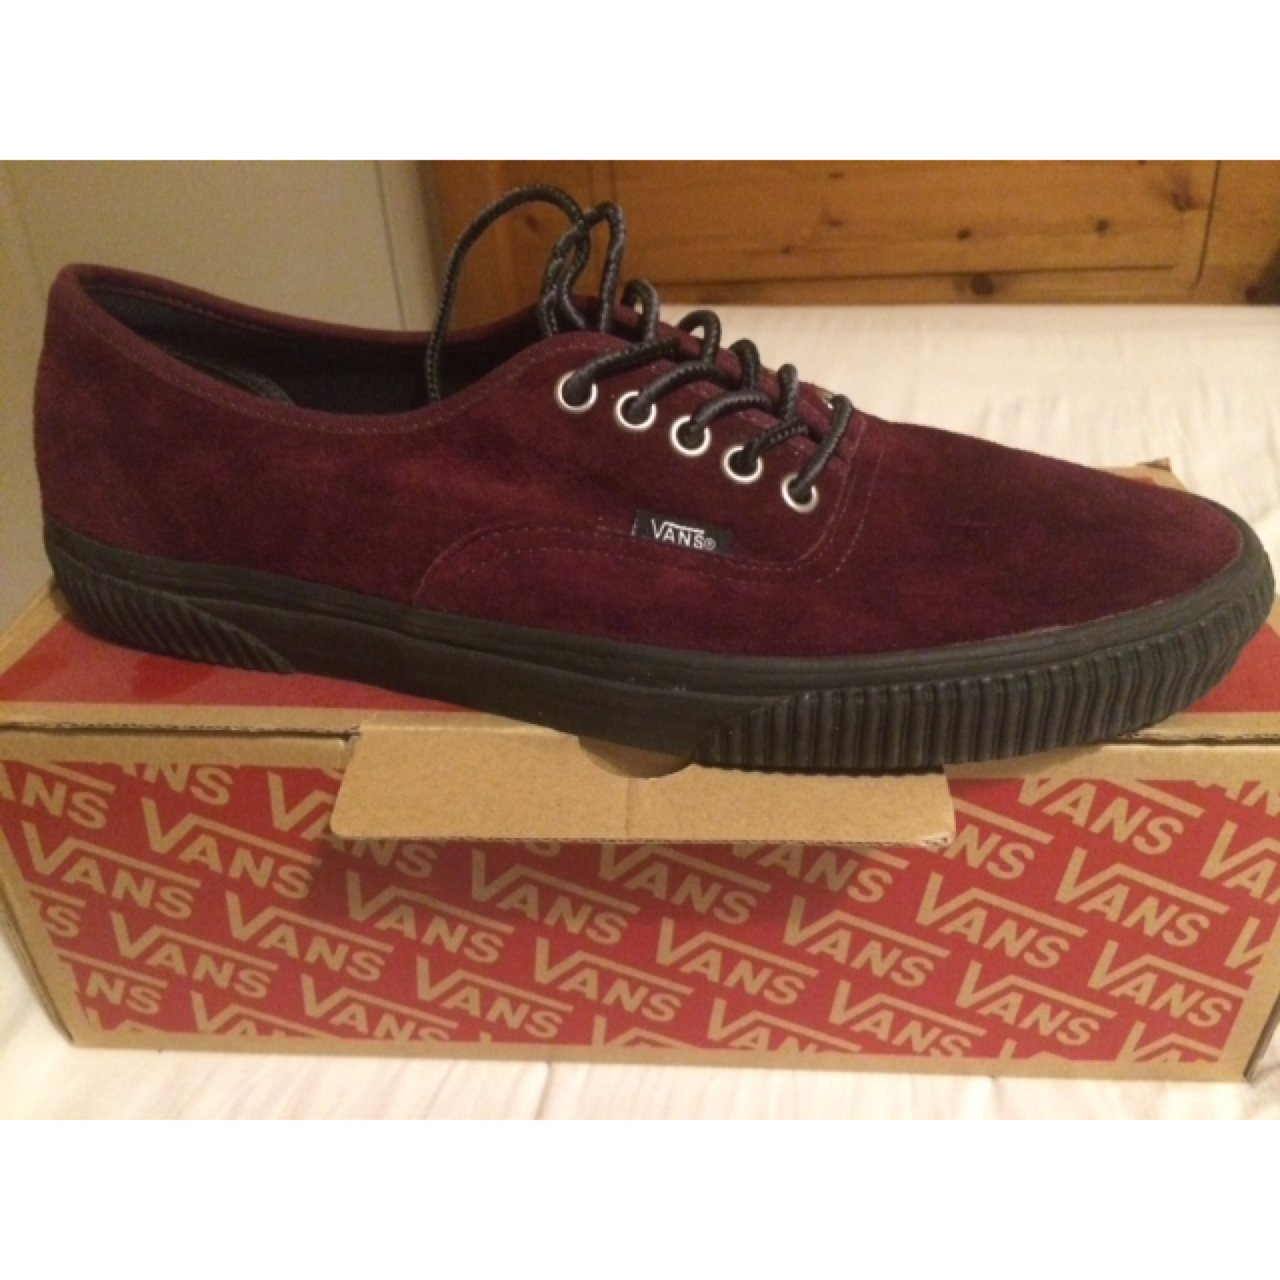 Vans old skool burgundy suede size uk10 no signs of wear - Depop 53b458773